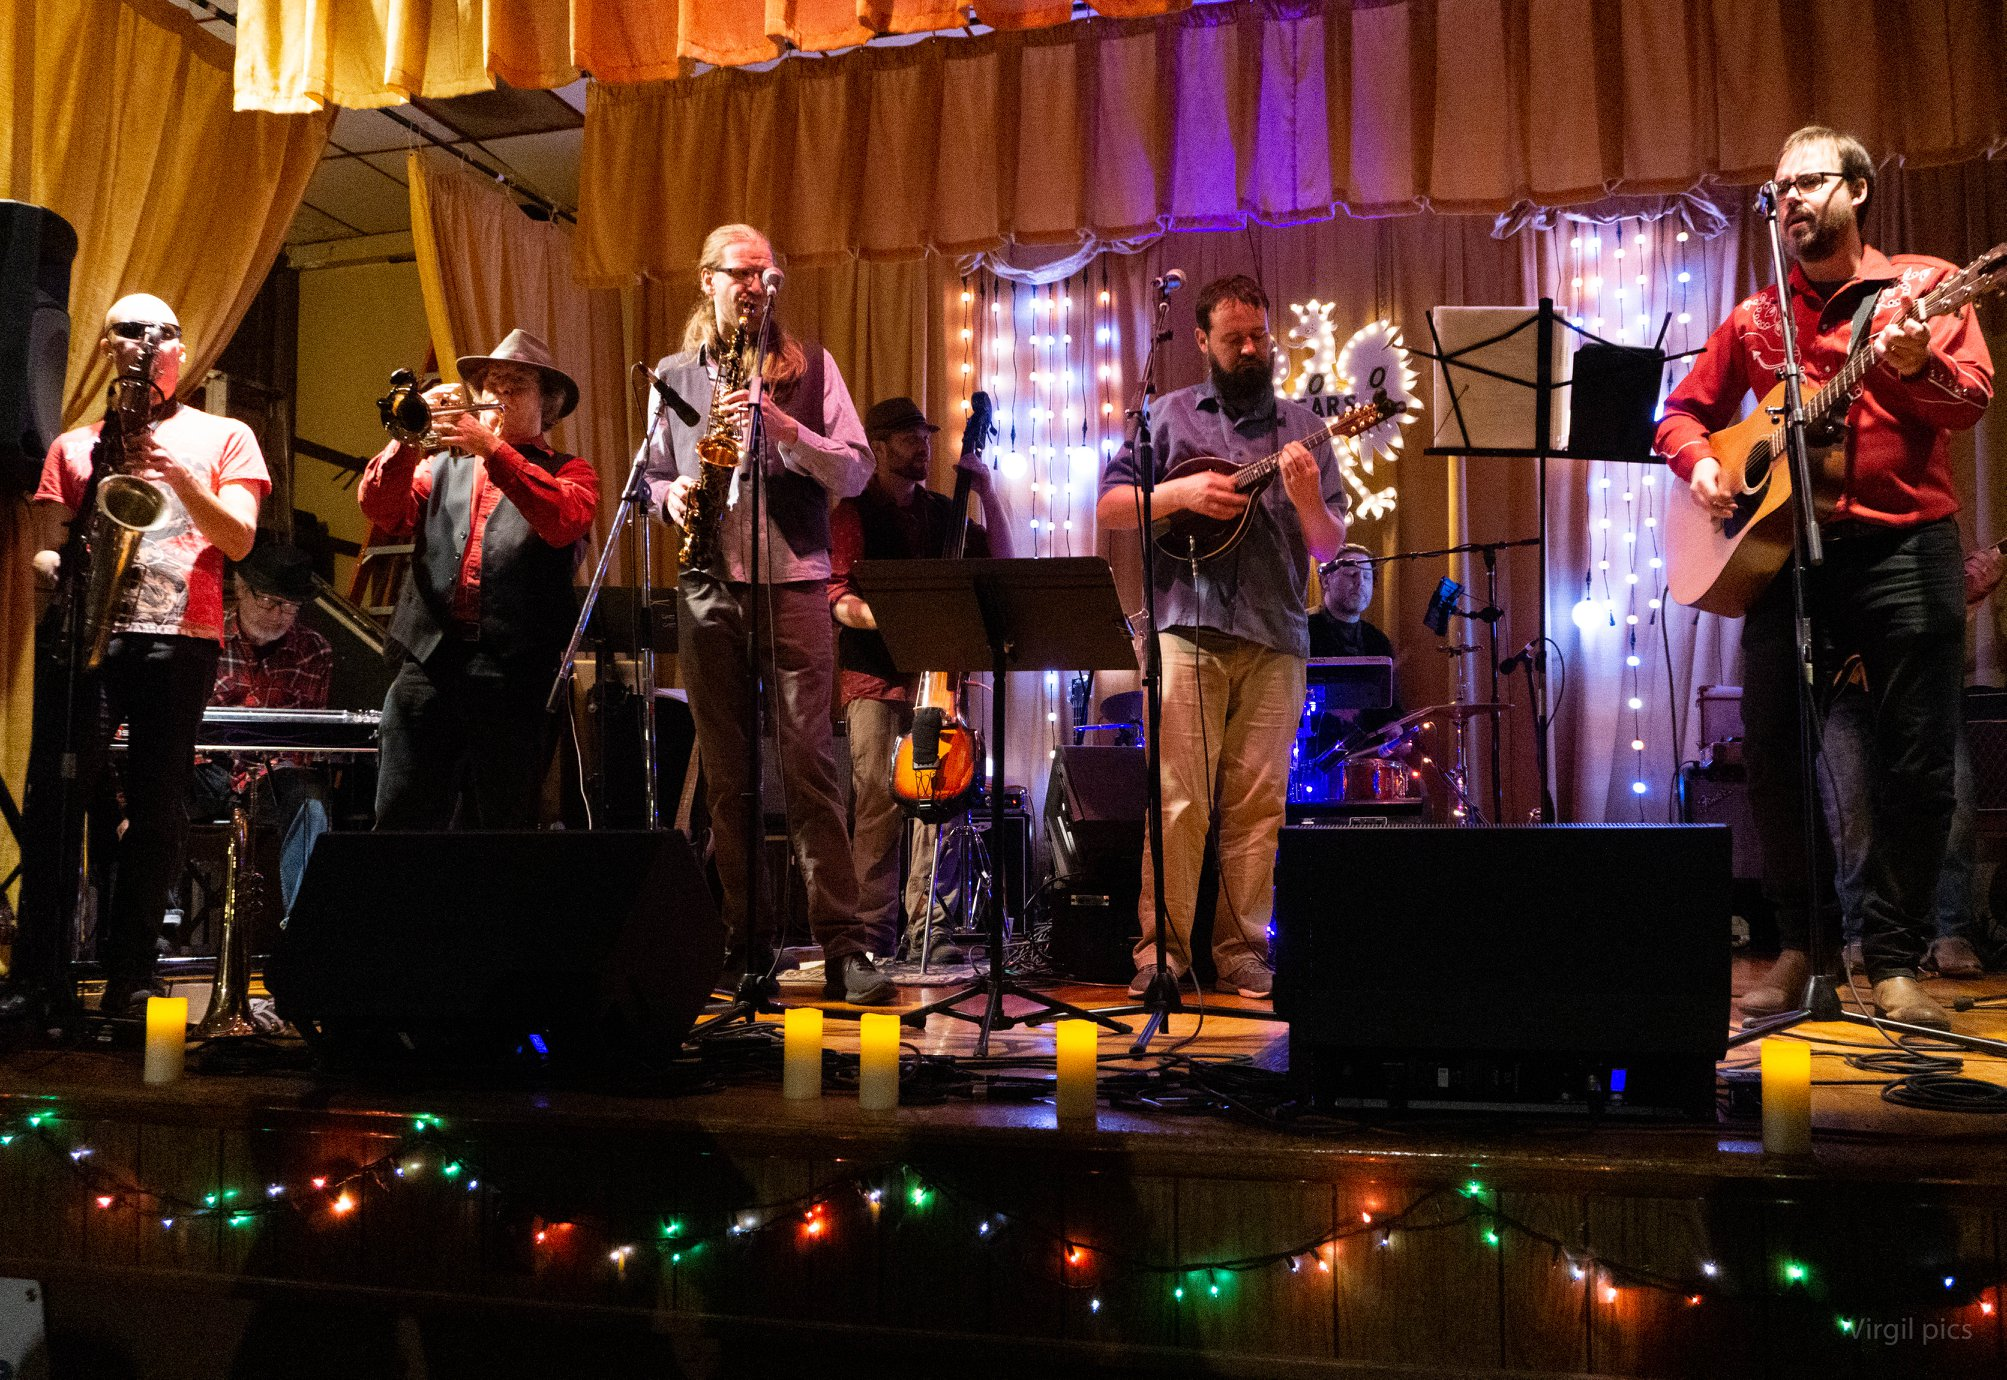 Dave Huber of Whale Show has a horn section! (Lakin, Ryan, Reggie, Nick, Rev, Dave)